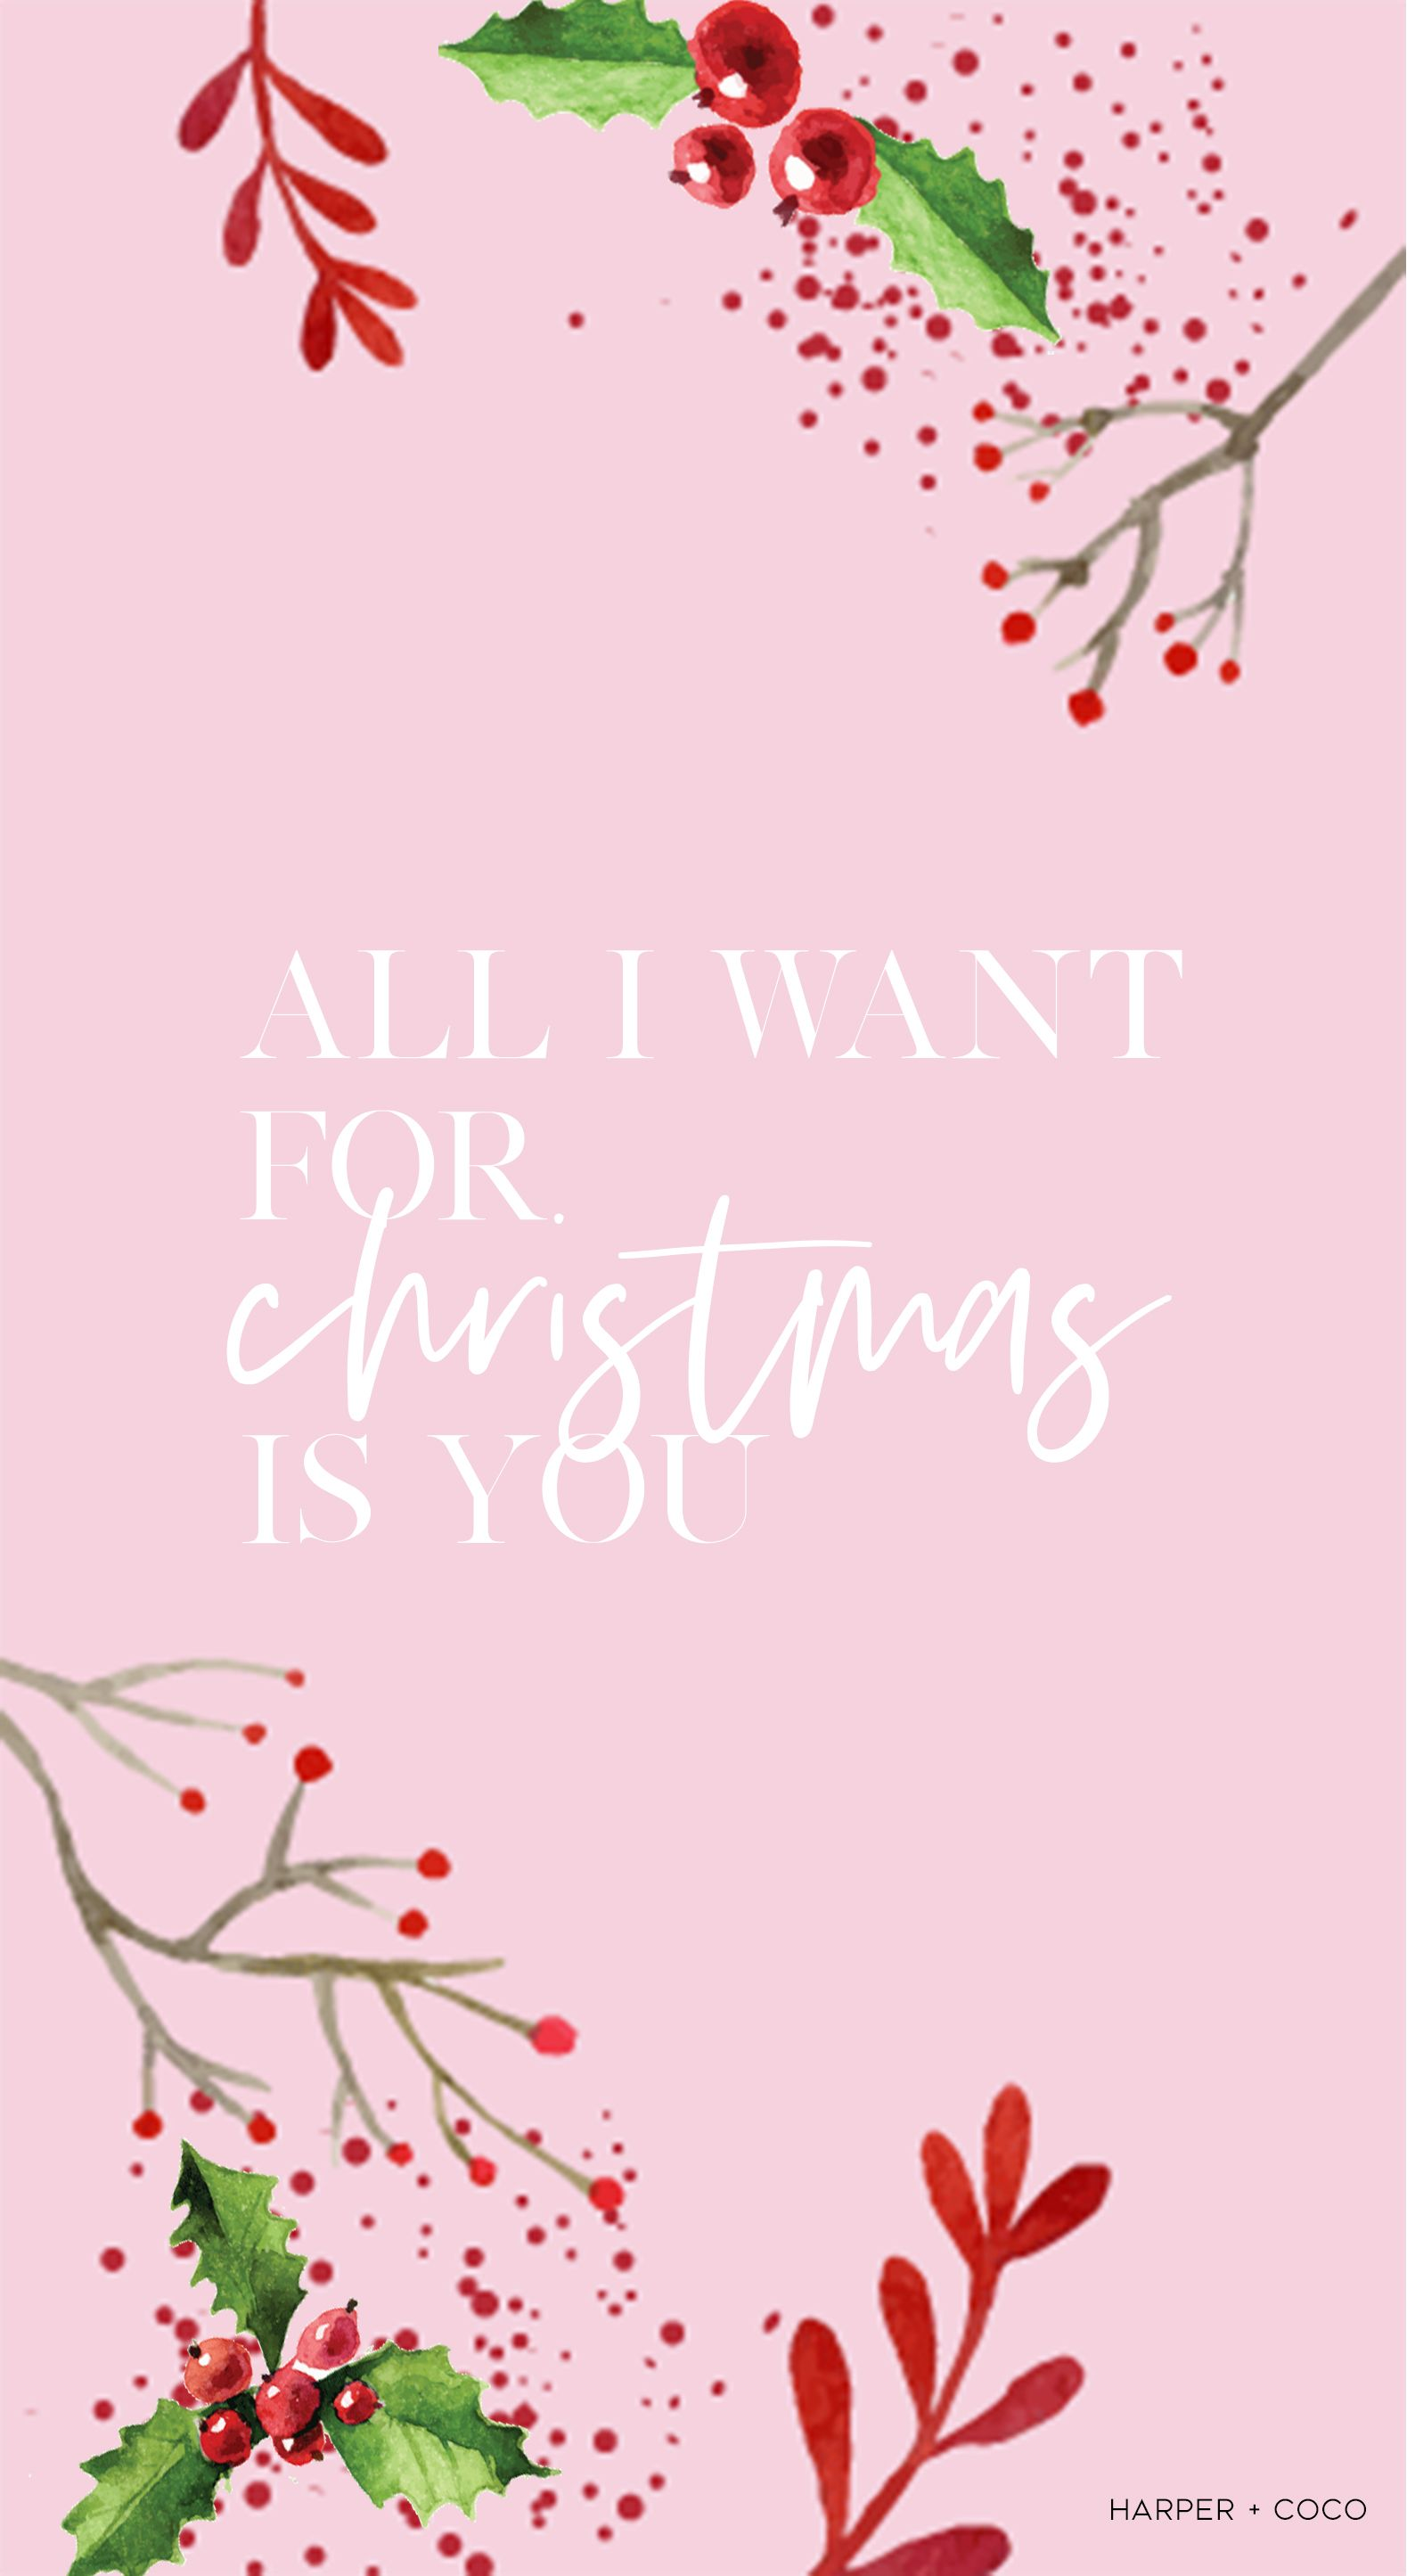 All I Want For Christmas Is You Iphone Wallpaper Pink Christmas Freewallpaper Iphonew Wallpaper Iphone Christmas Christmas Phone Wallpaper Xmas Wallpaper